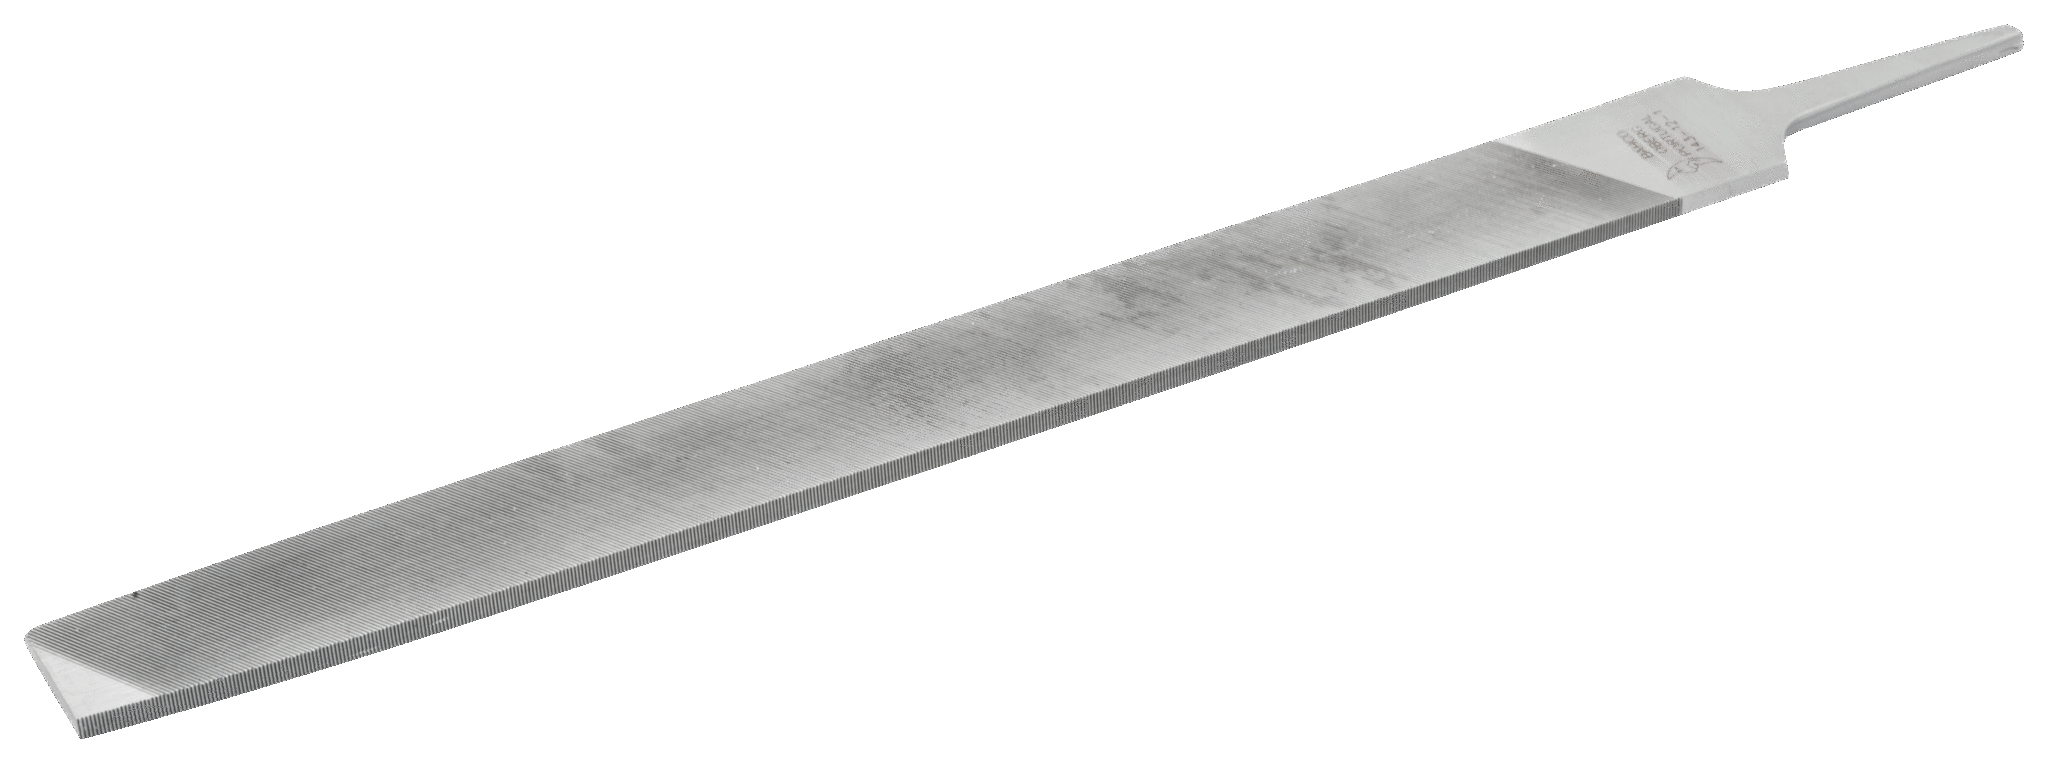 Bahco 1-100-14-2-0 Engineers File Second Cut 360mm Made In Portugal BB